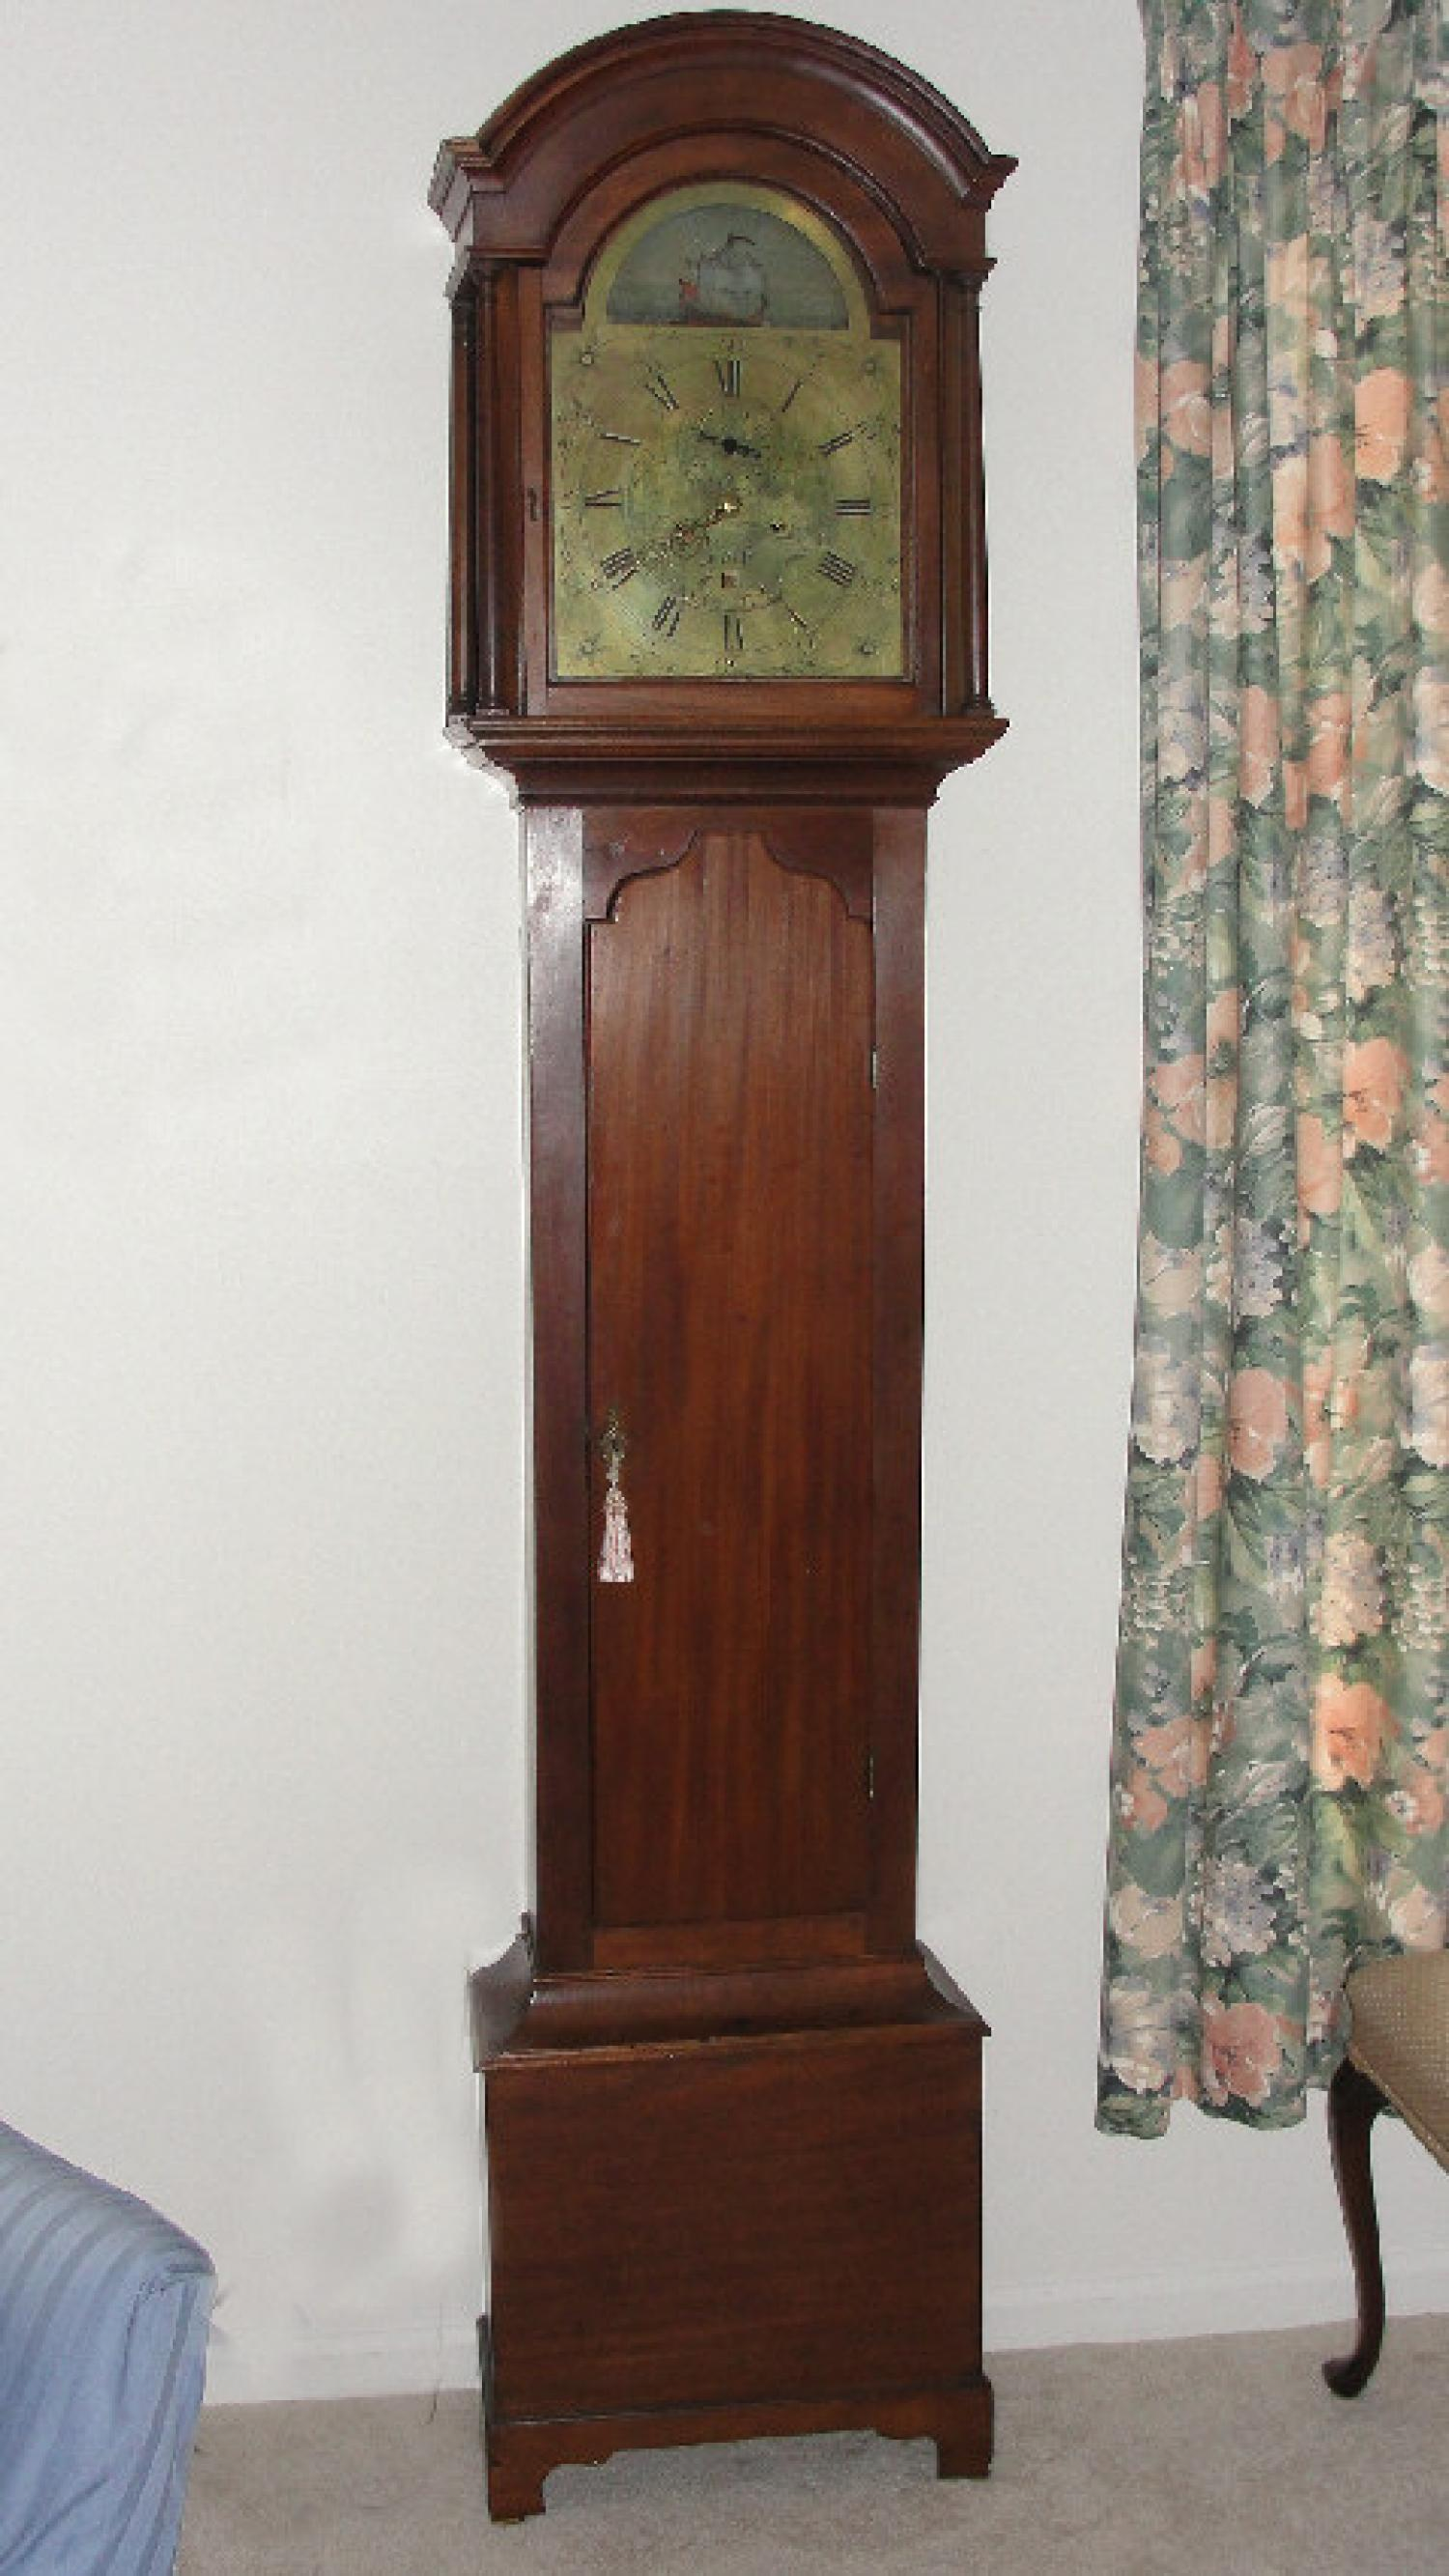 19thc English Tall Case Clock by Thos Bullock